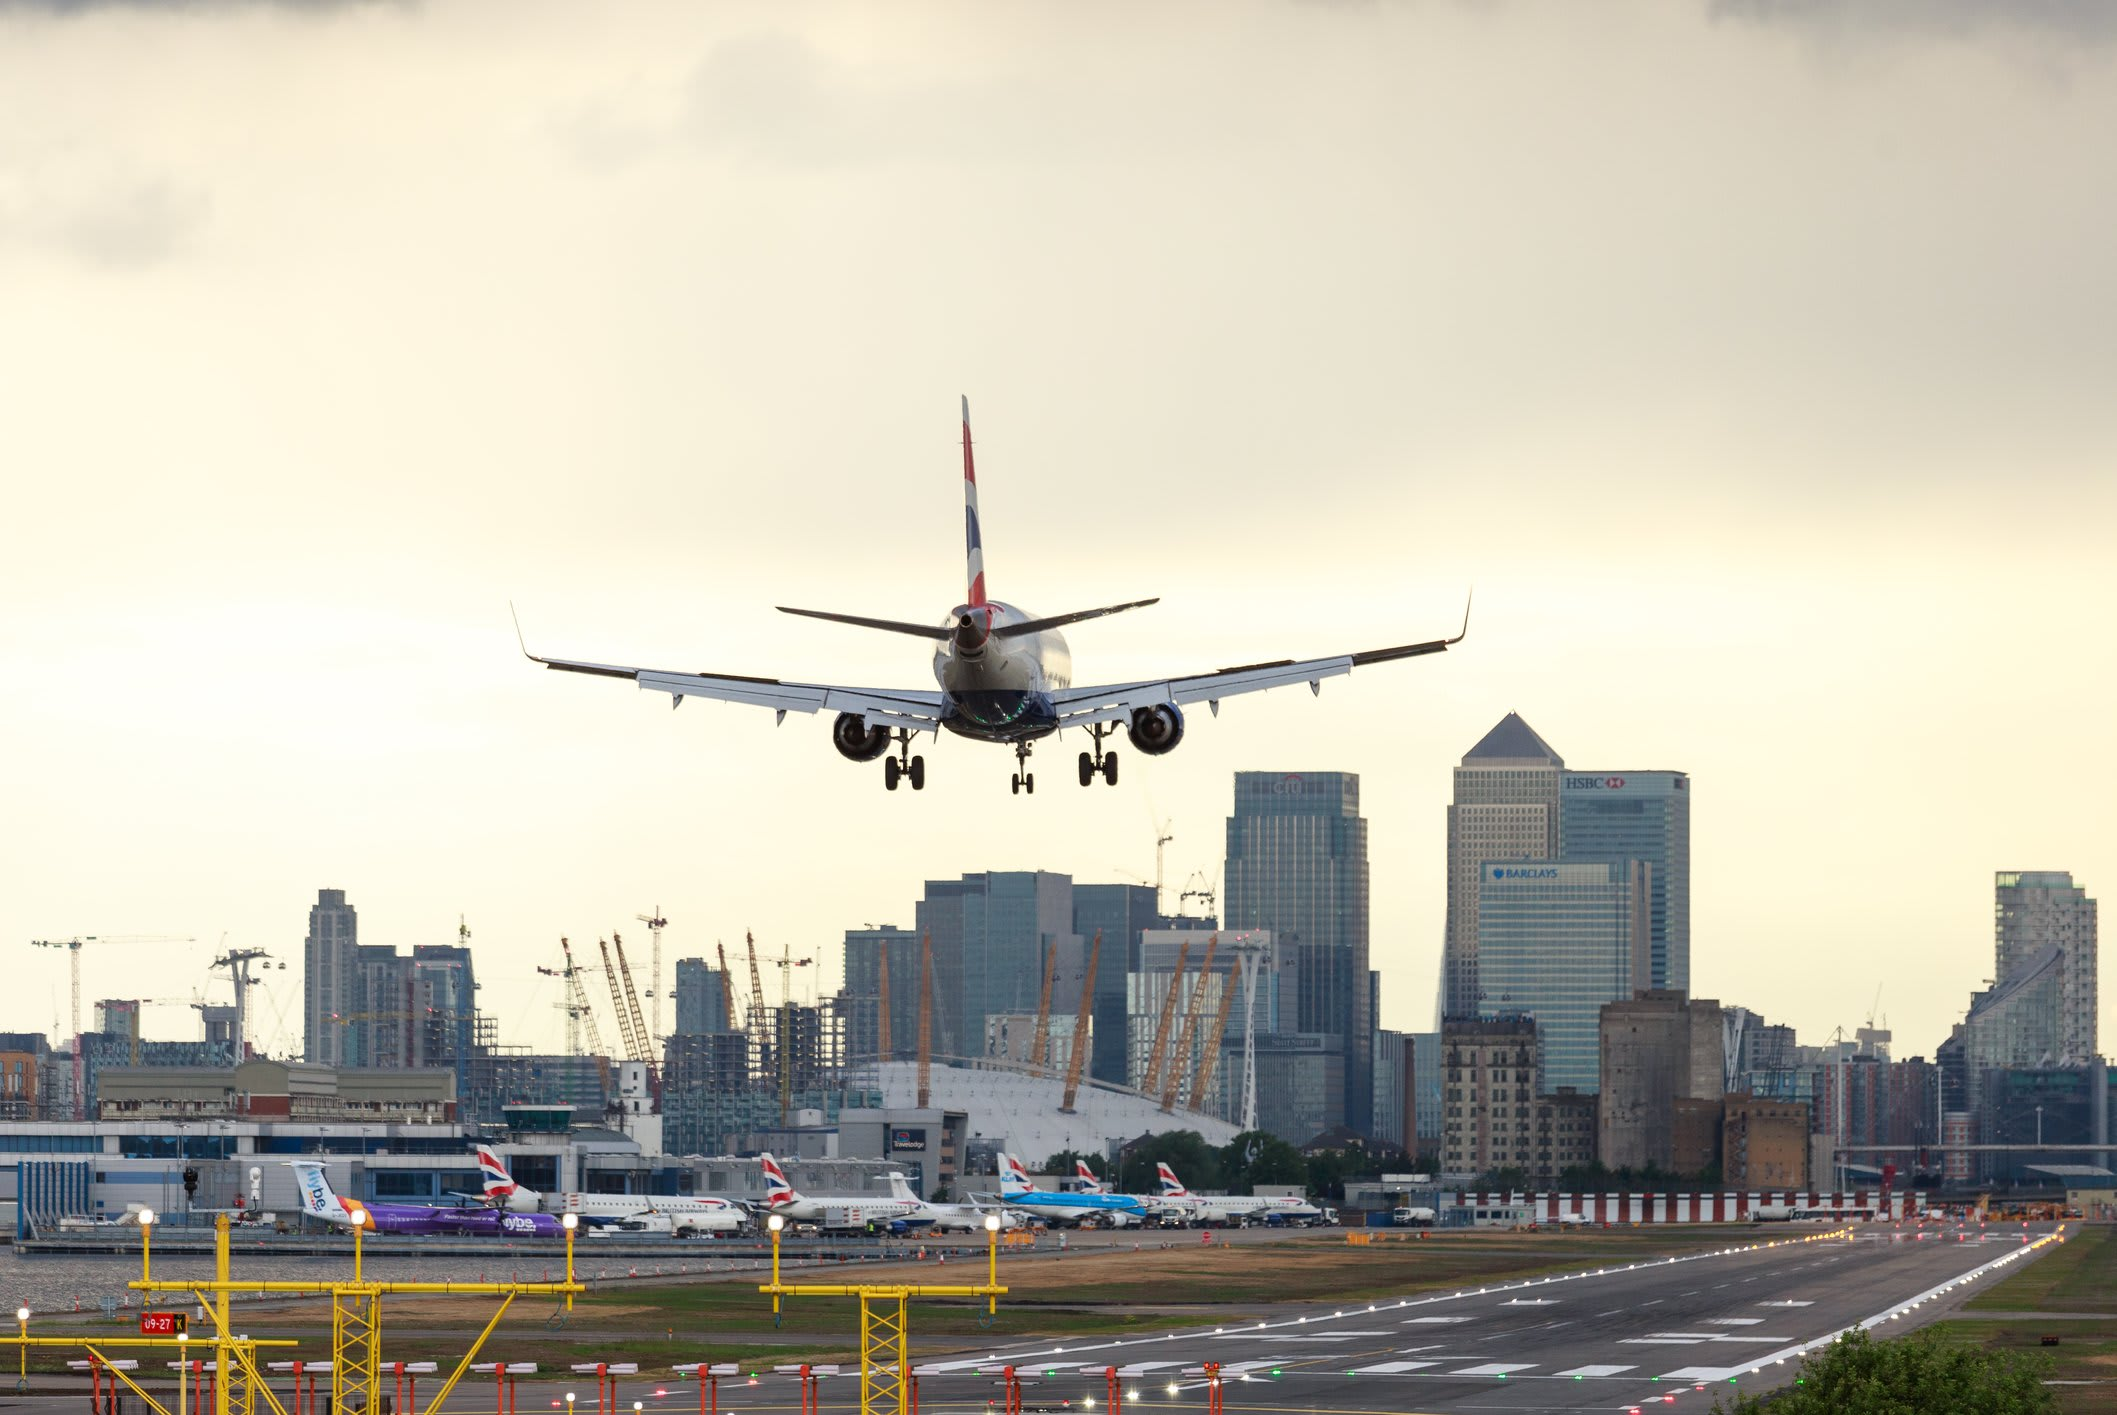 Image: A plane landing at London City Airport (Mrcatmint/Dreamstime)